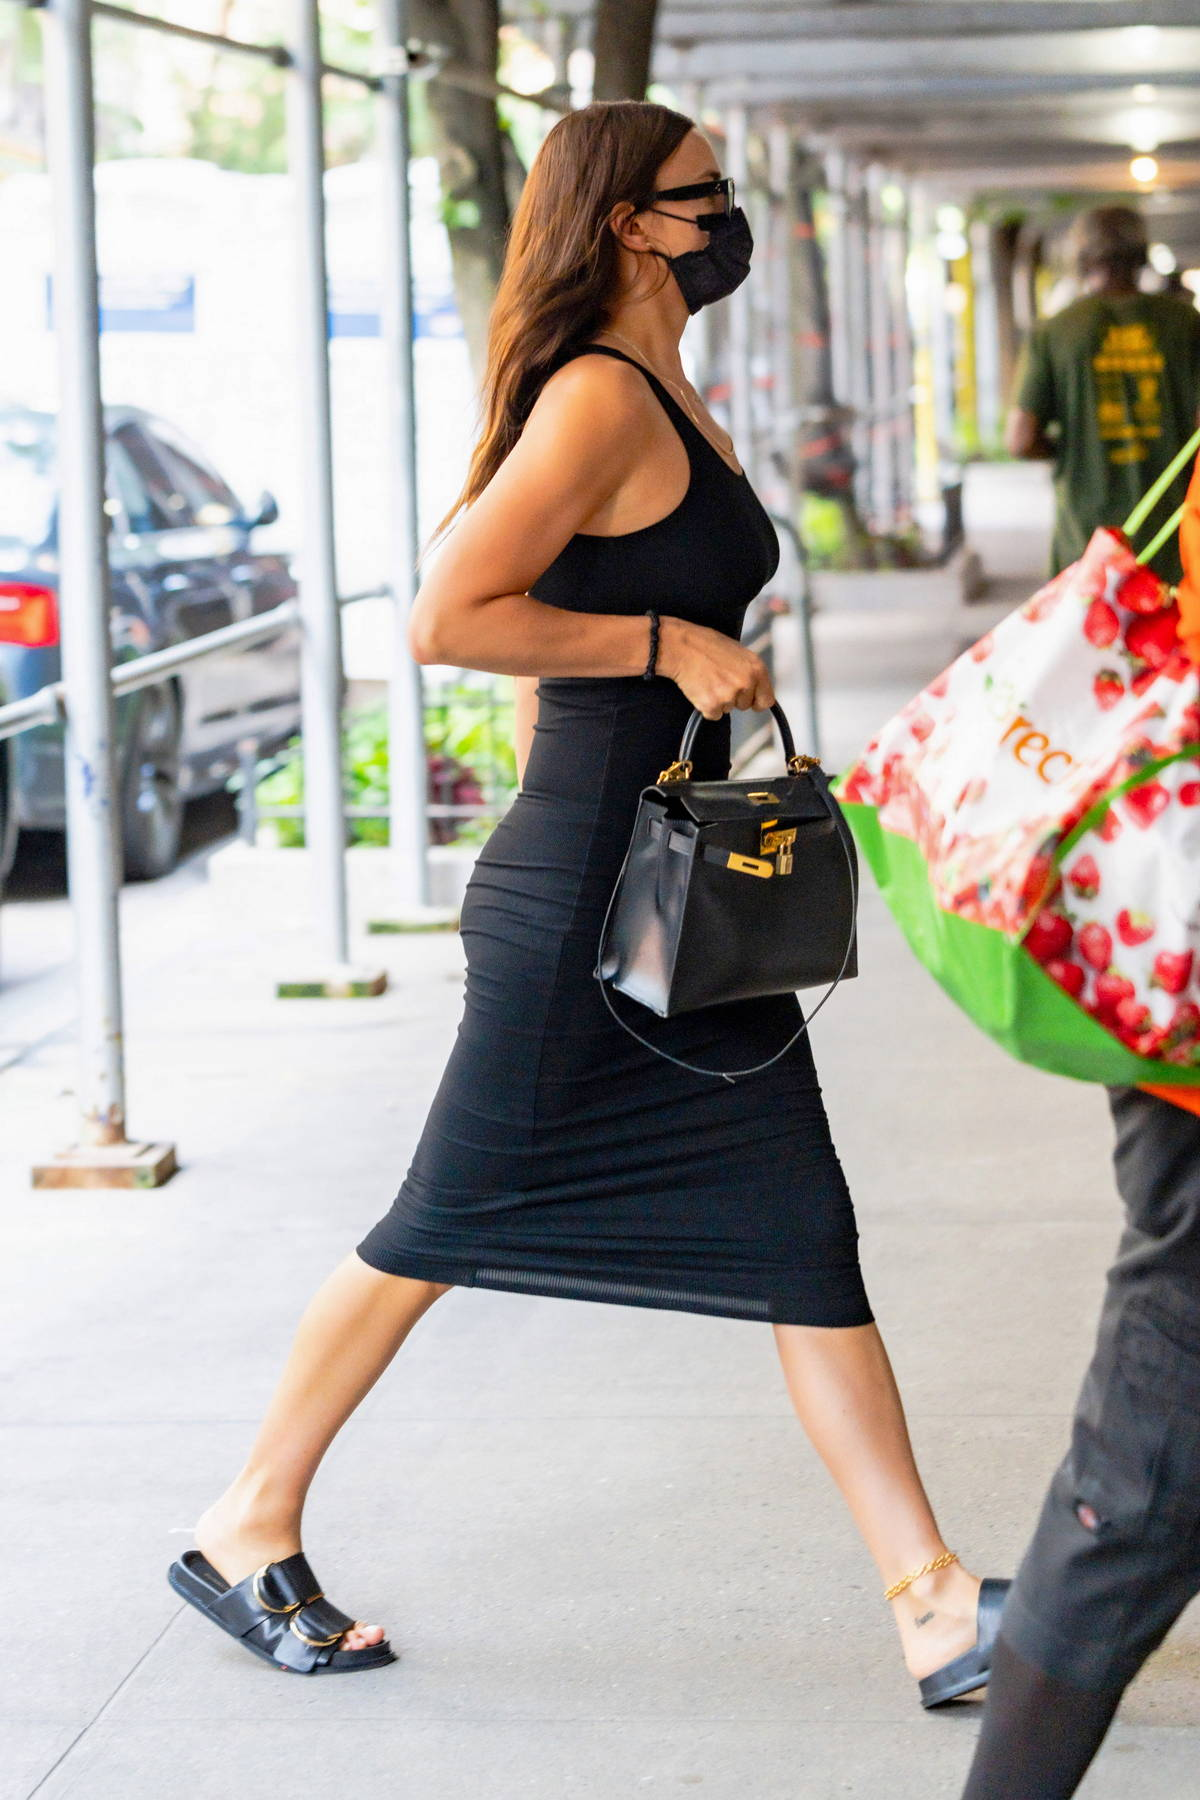 Irina Shayk looks great in a form-fitting black dress while out running errands in New York City